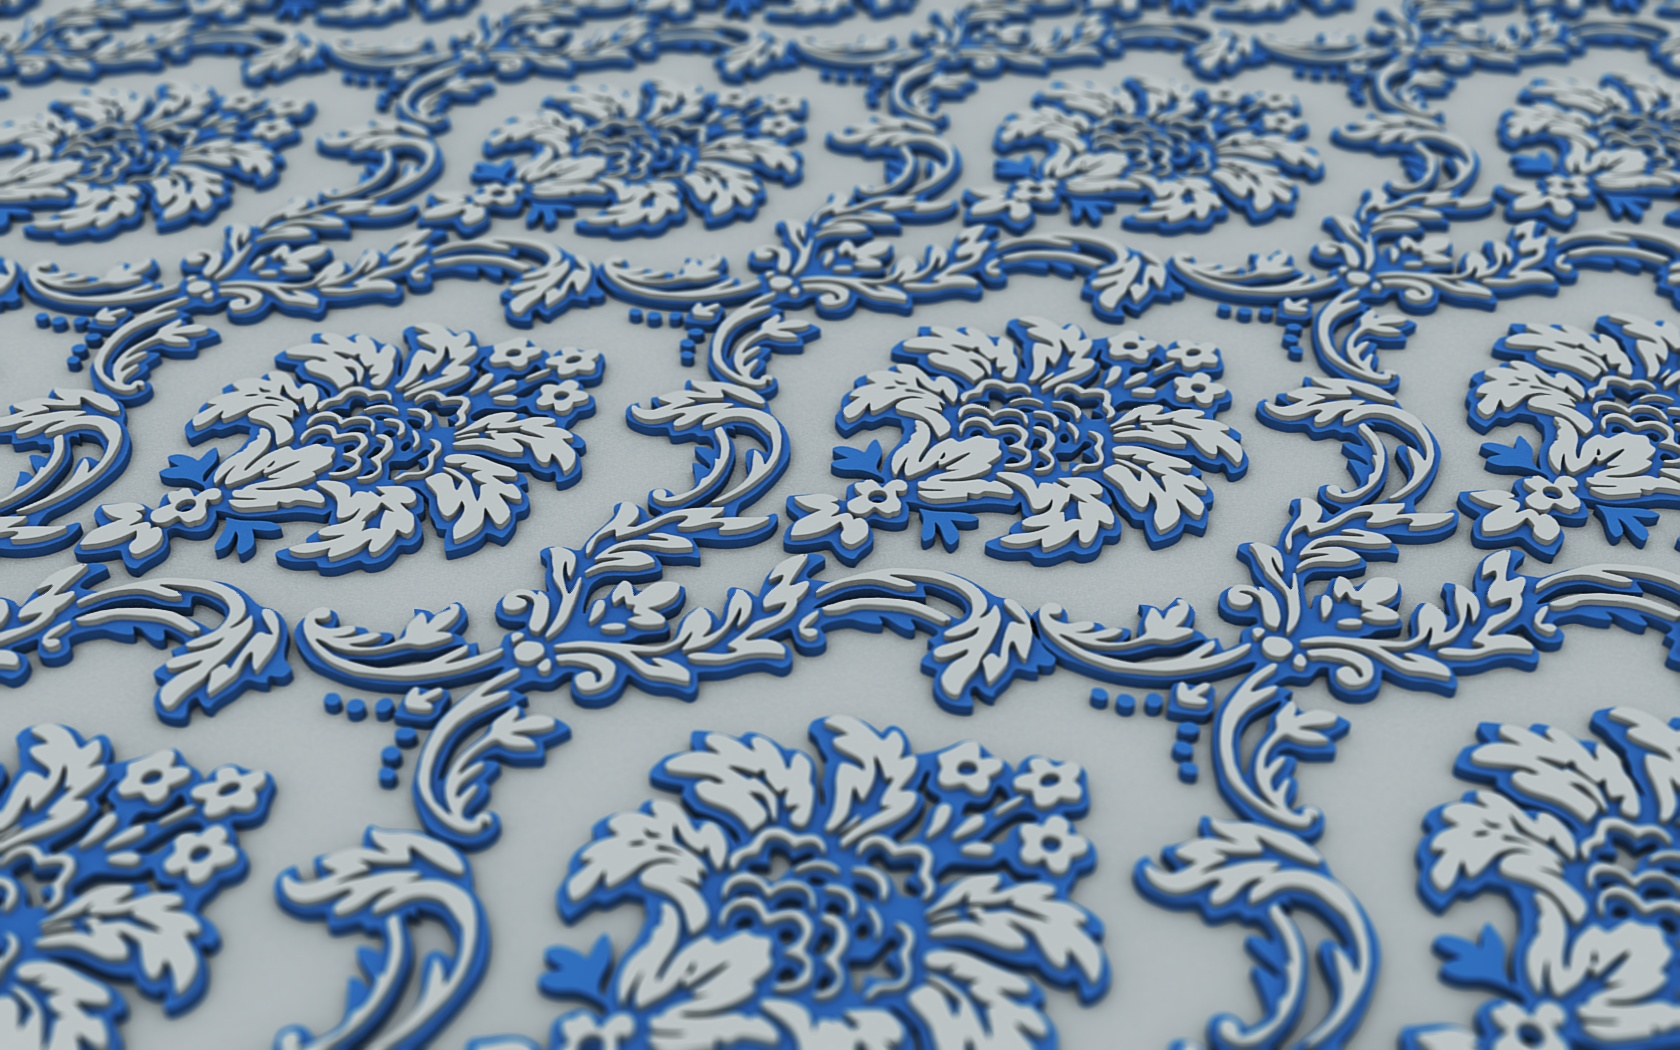 Creating tileable patterns with GIMP, Inkscape and Blender